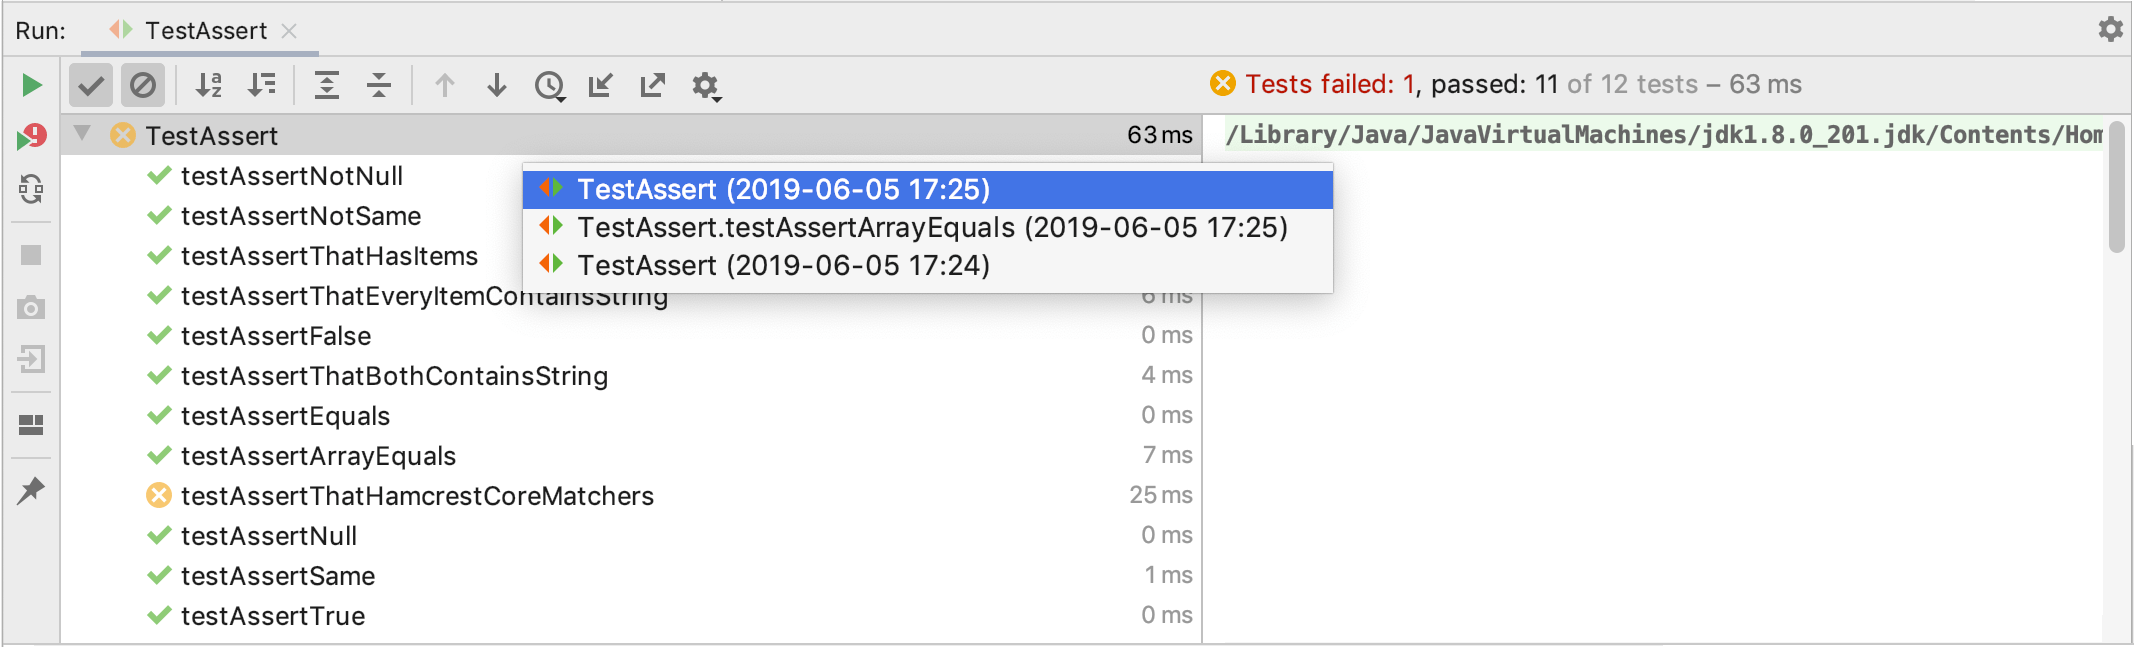 Viewing and Exploring Test Results - Help | IntelliJ IDEA